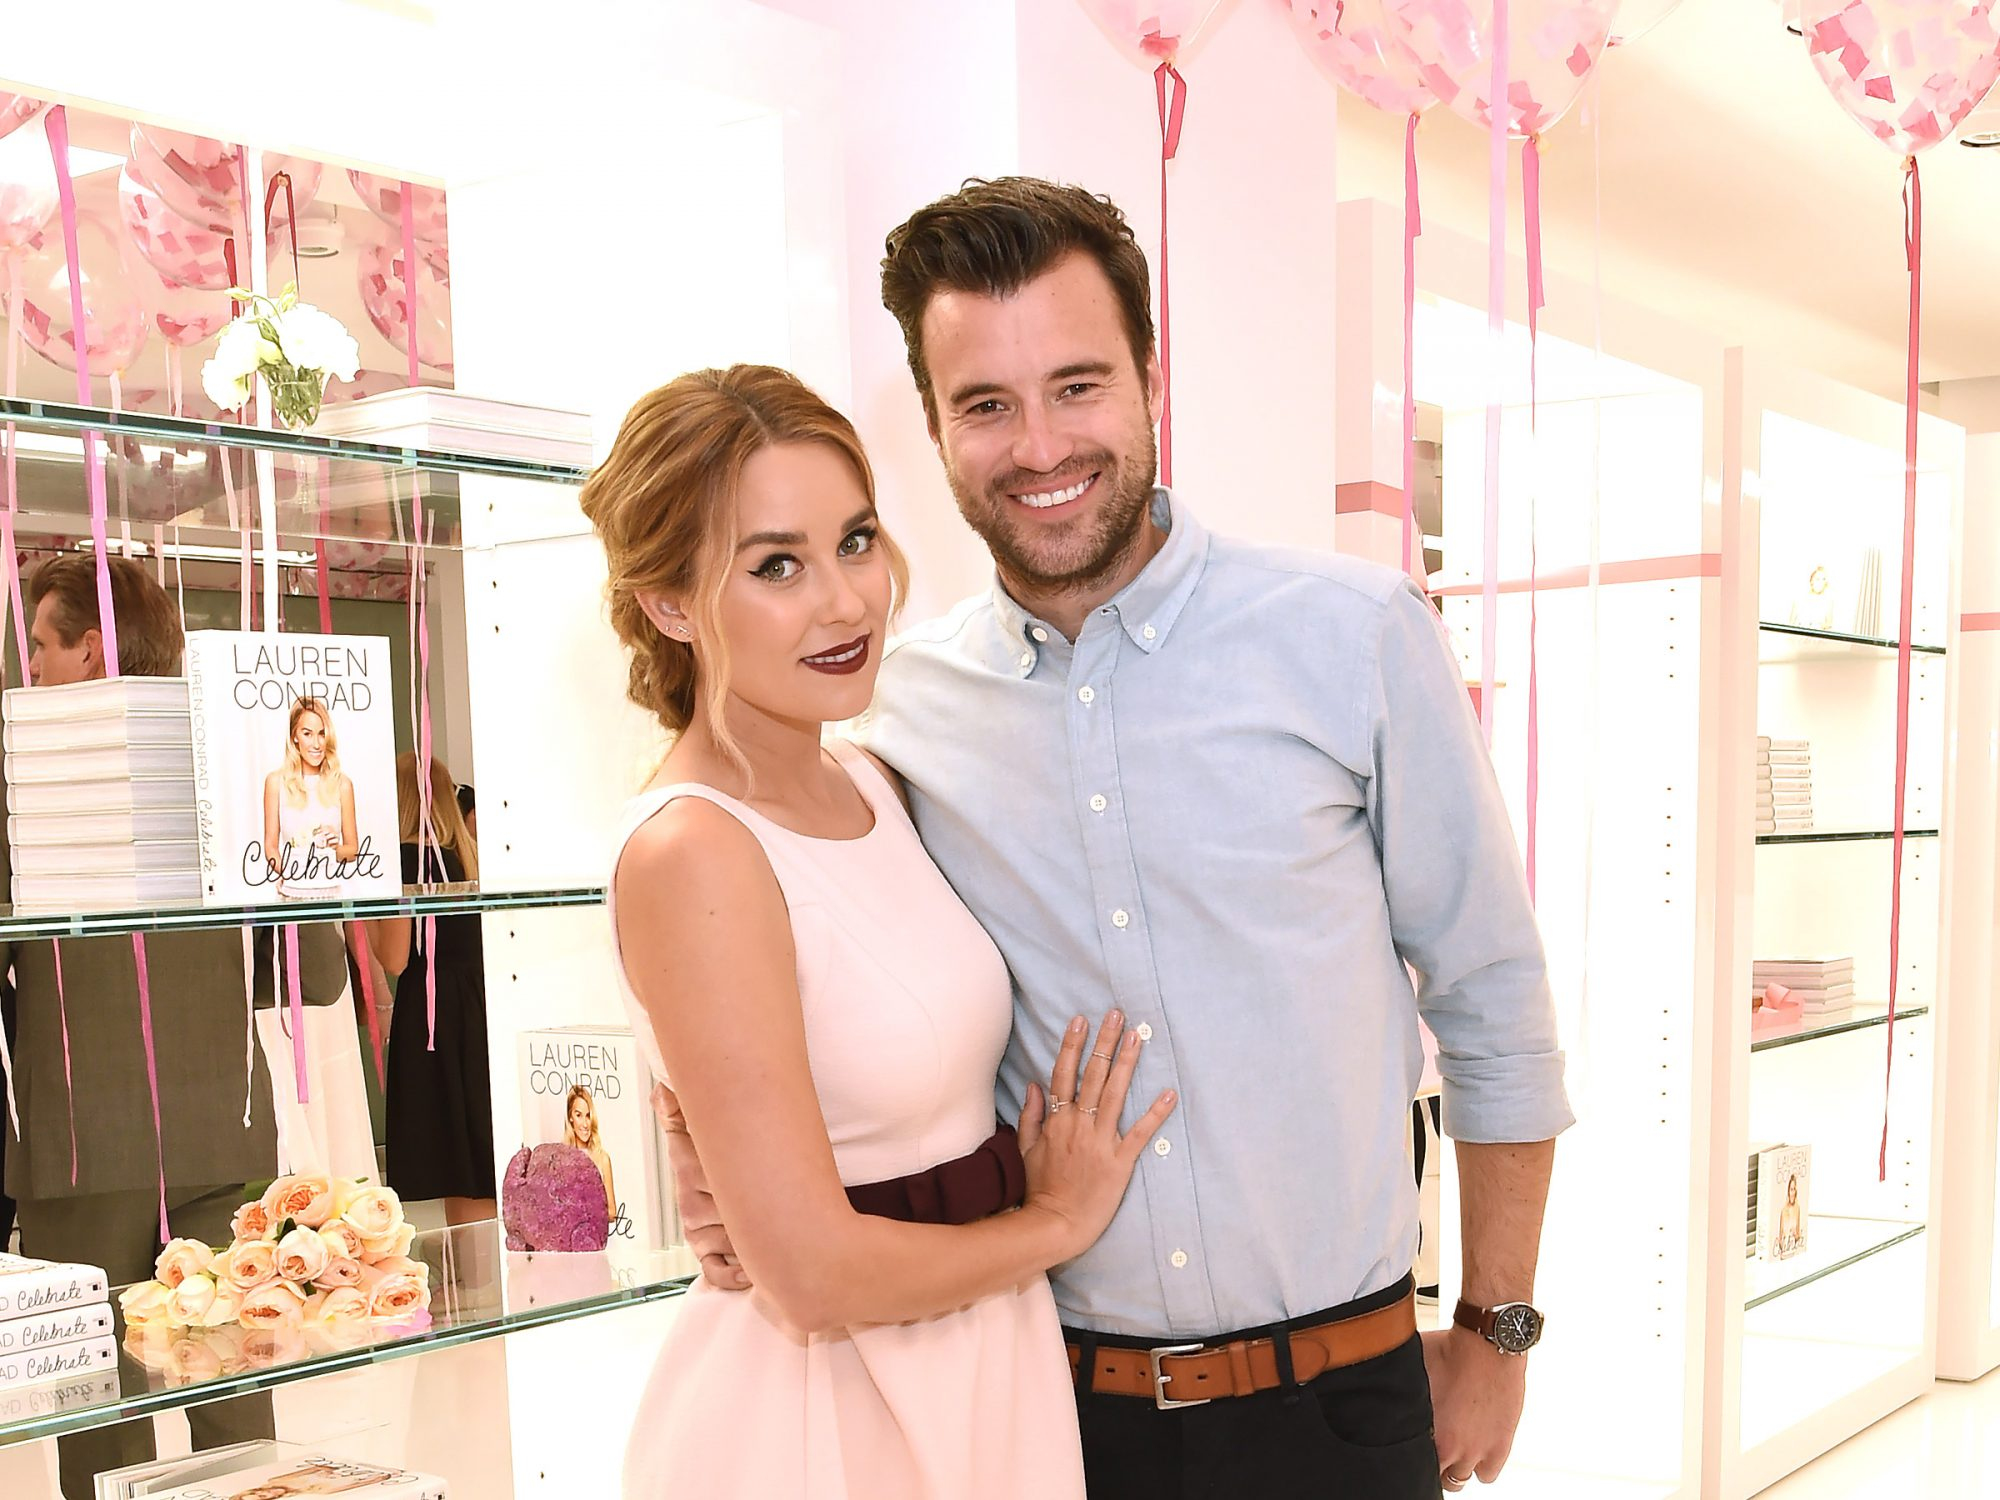 """Lauren Conrad Celebrate"" Book Launch"